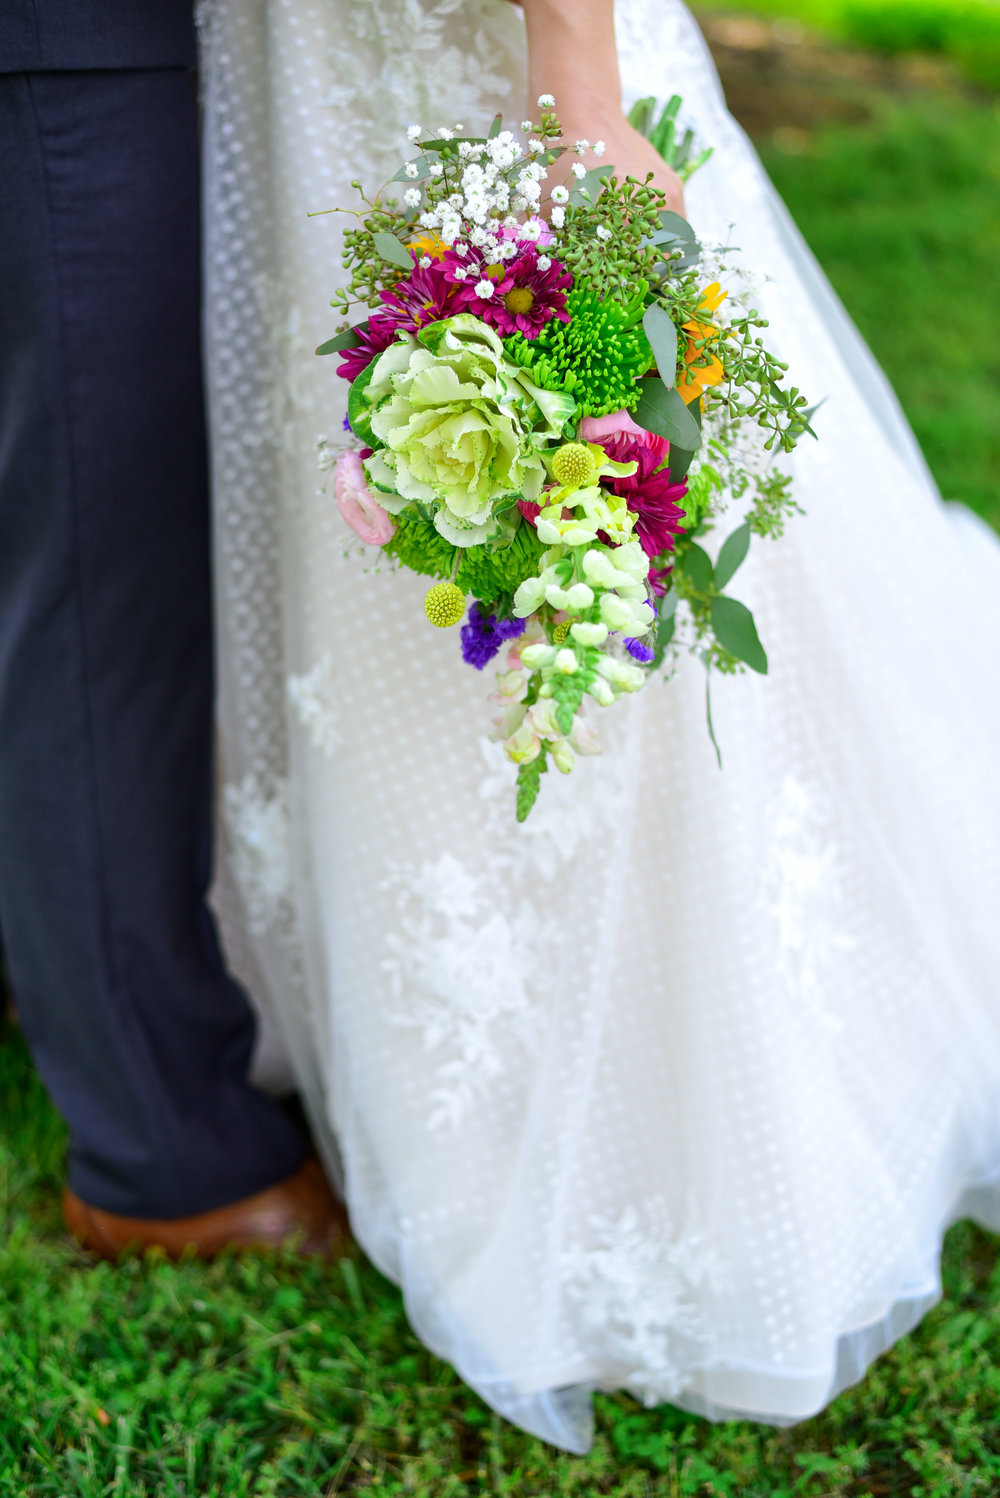 Highgrove Estate Bride and Groom